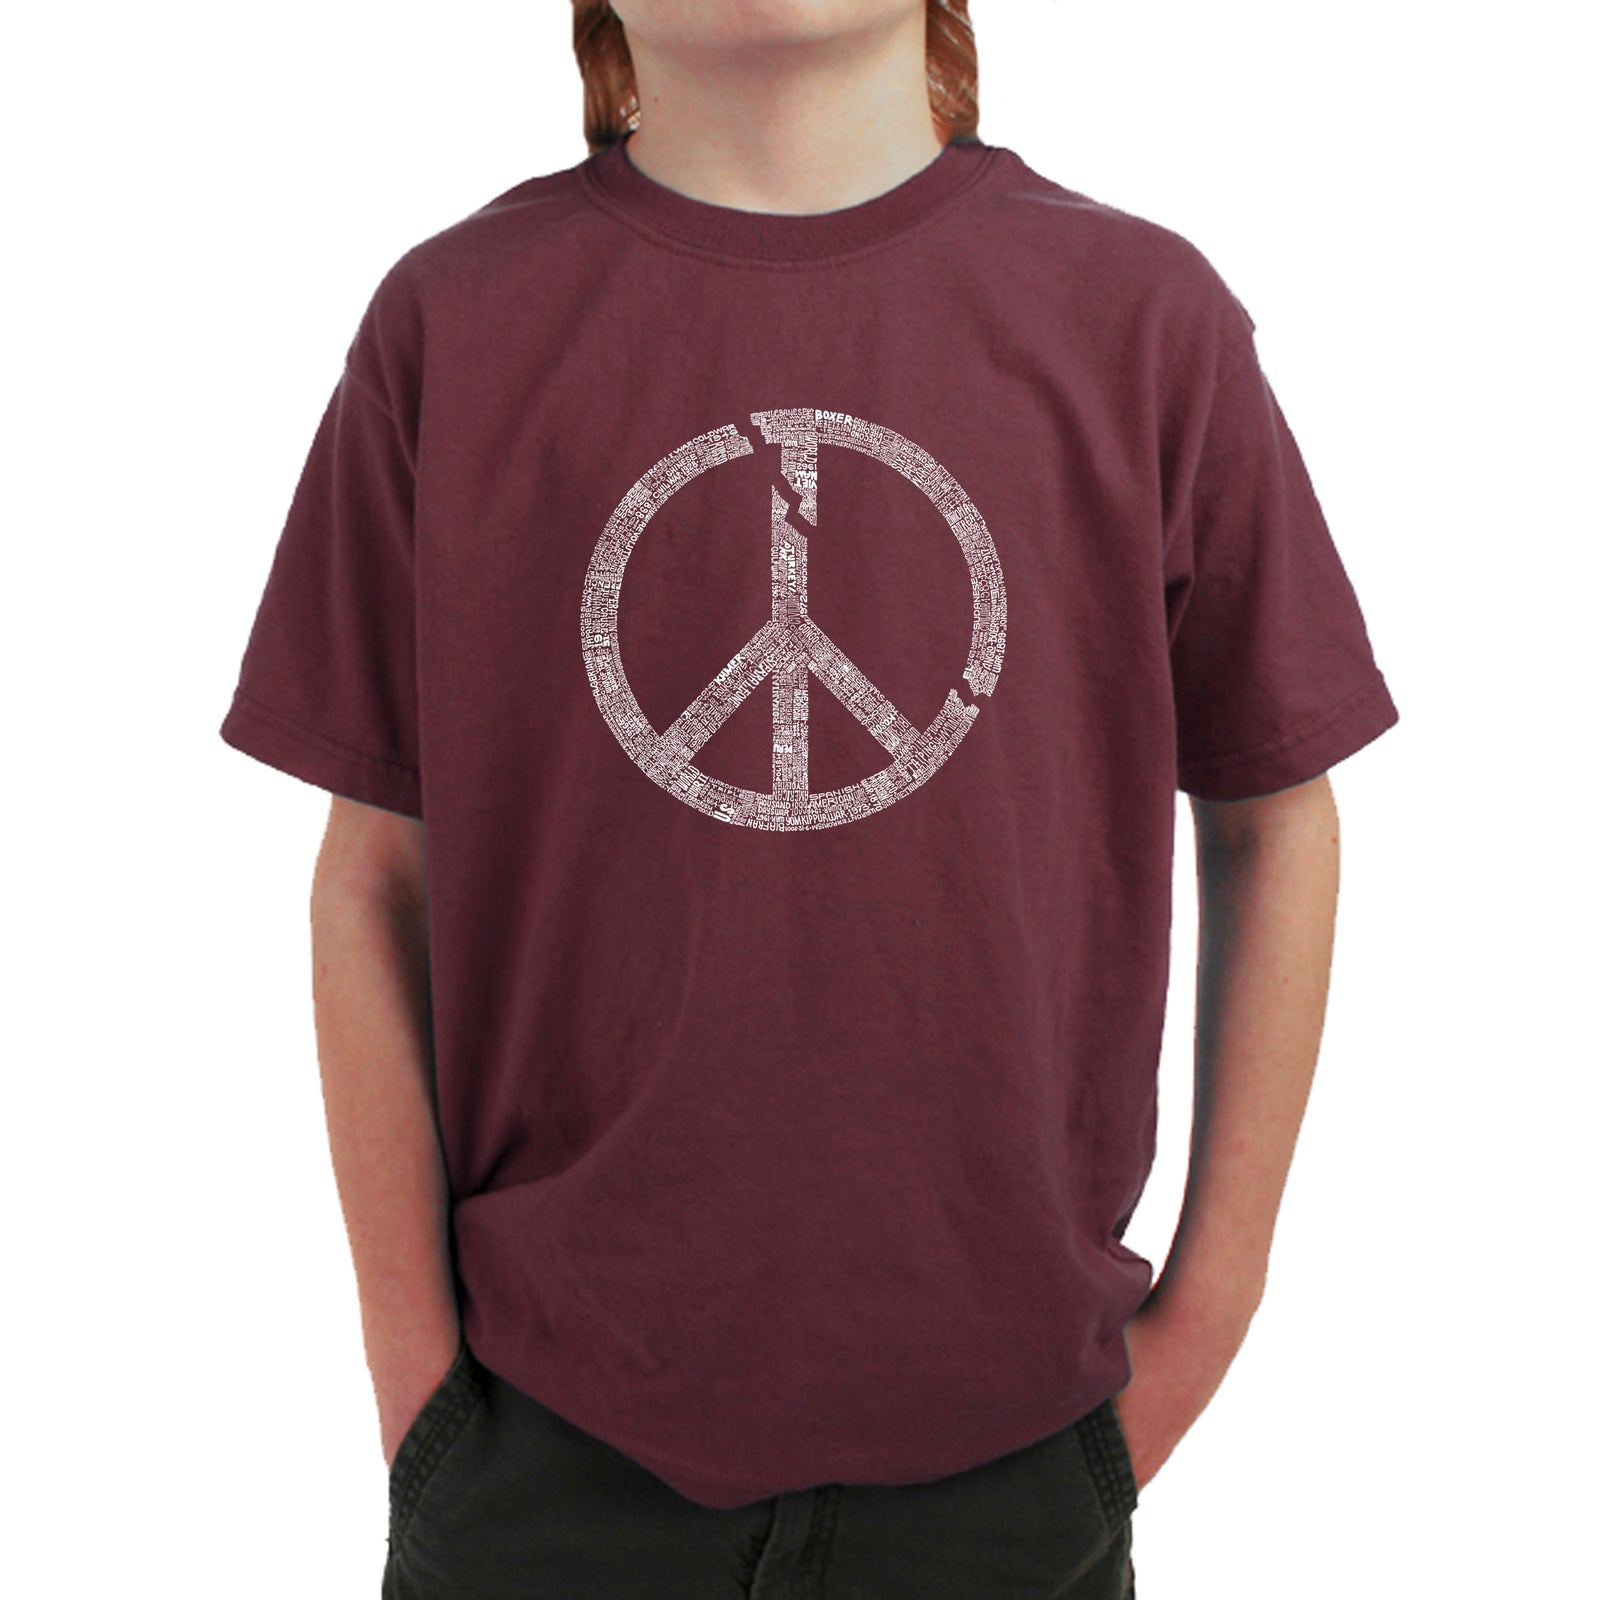 Boy's T-shirt - EVERY MAJOR WORLD CONFLICT SINCE 1770